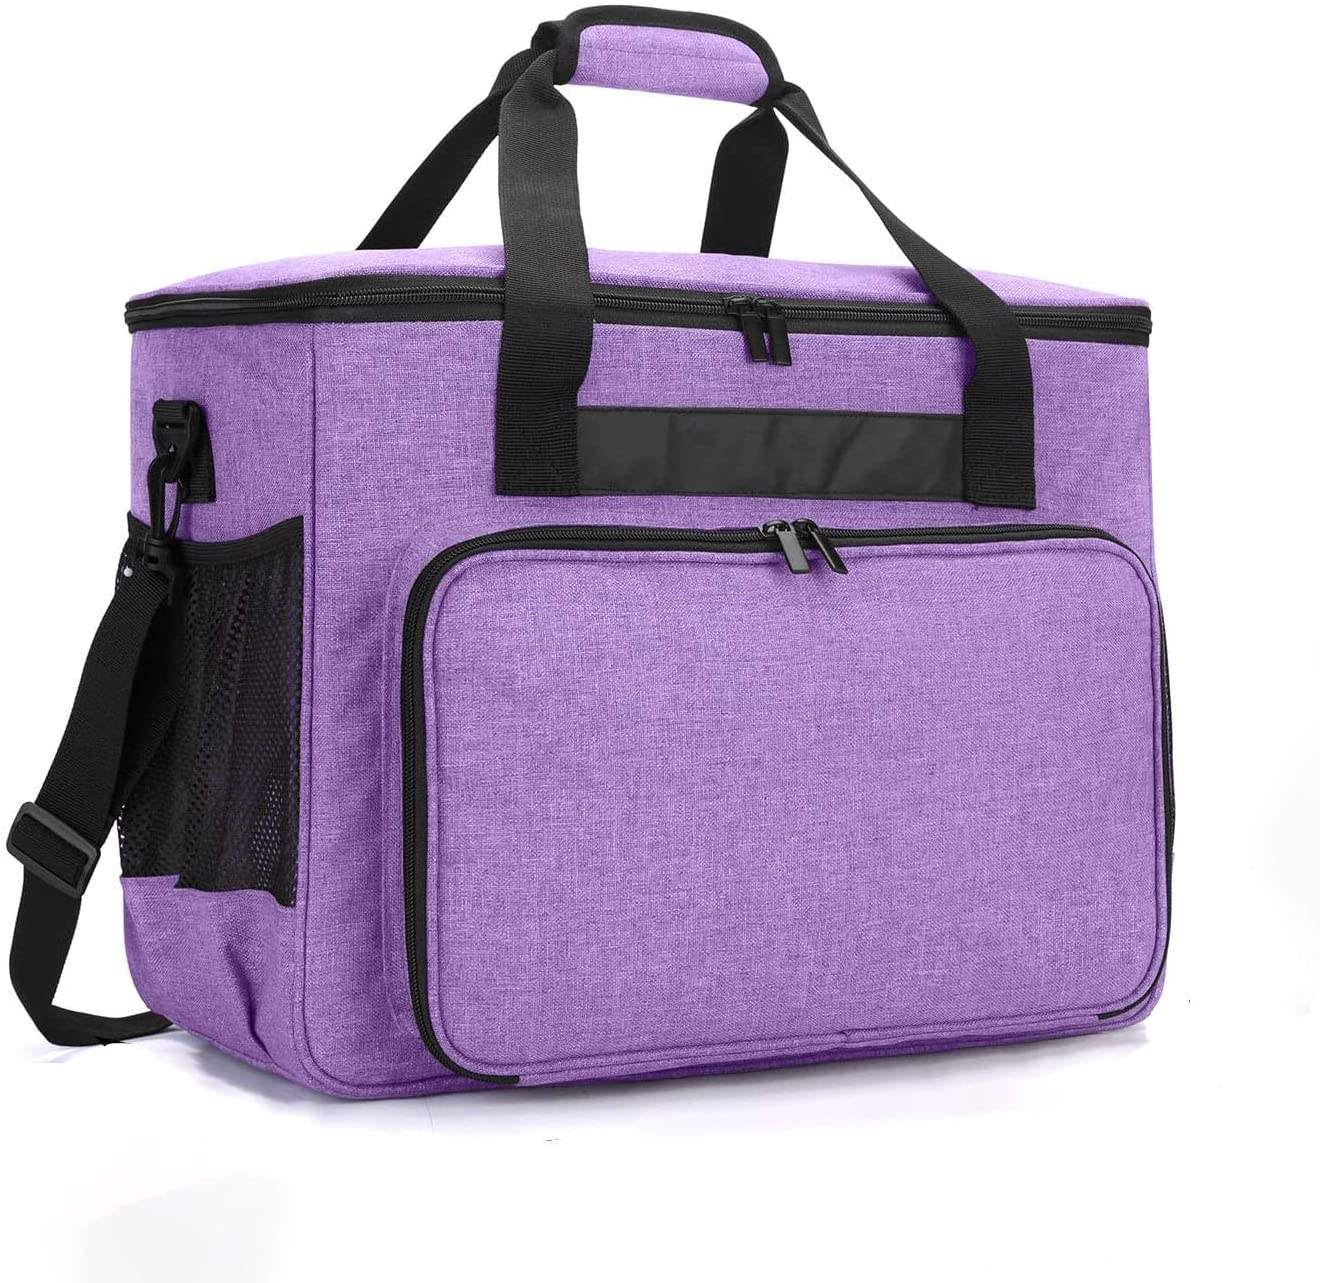 Multifunction Sewing Machine Carrying Case Universal Travel Tote Bag with Shoulder Strap Sewing Machine Storage Handbag